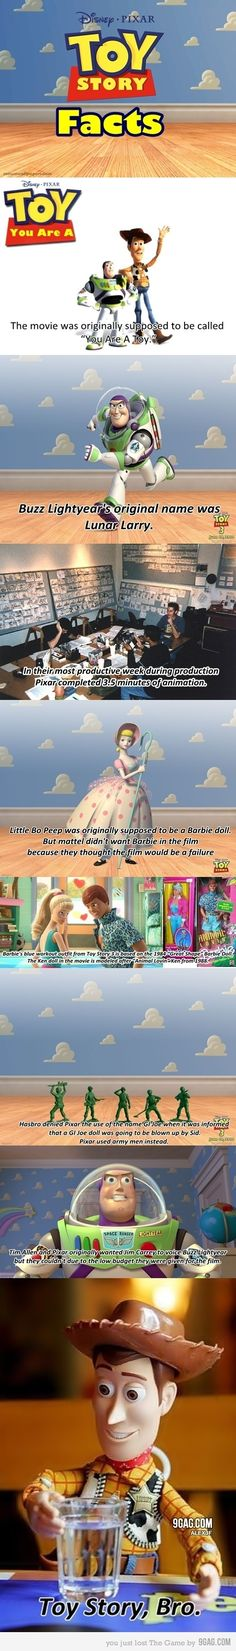 Stuff you didn't know about Toy Story.